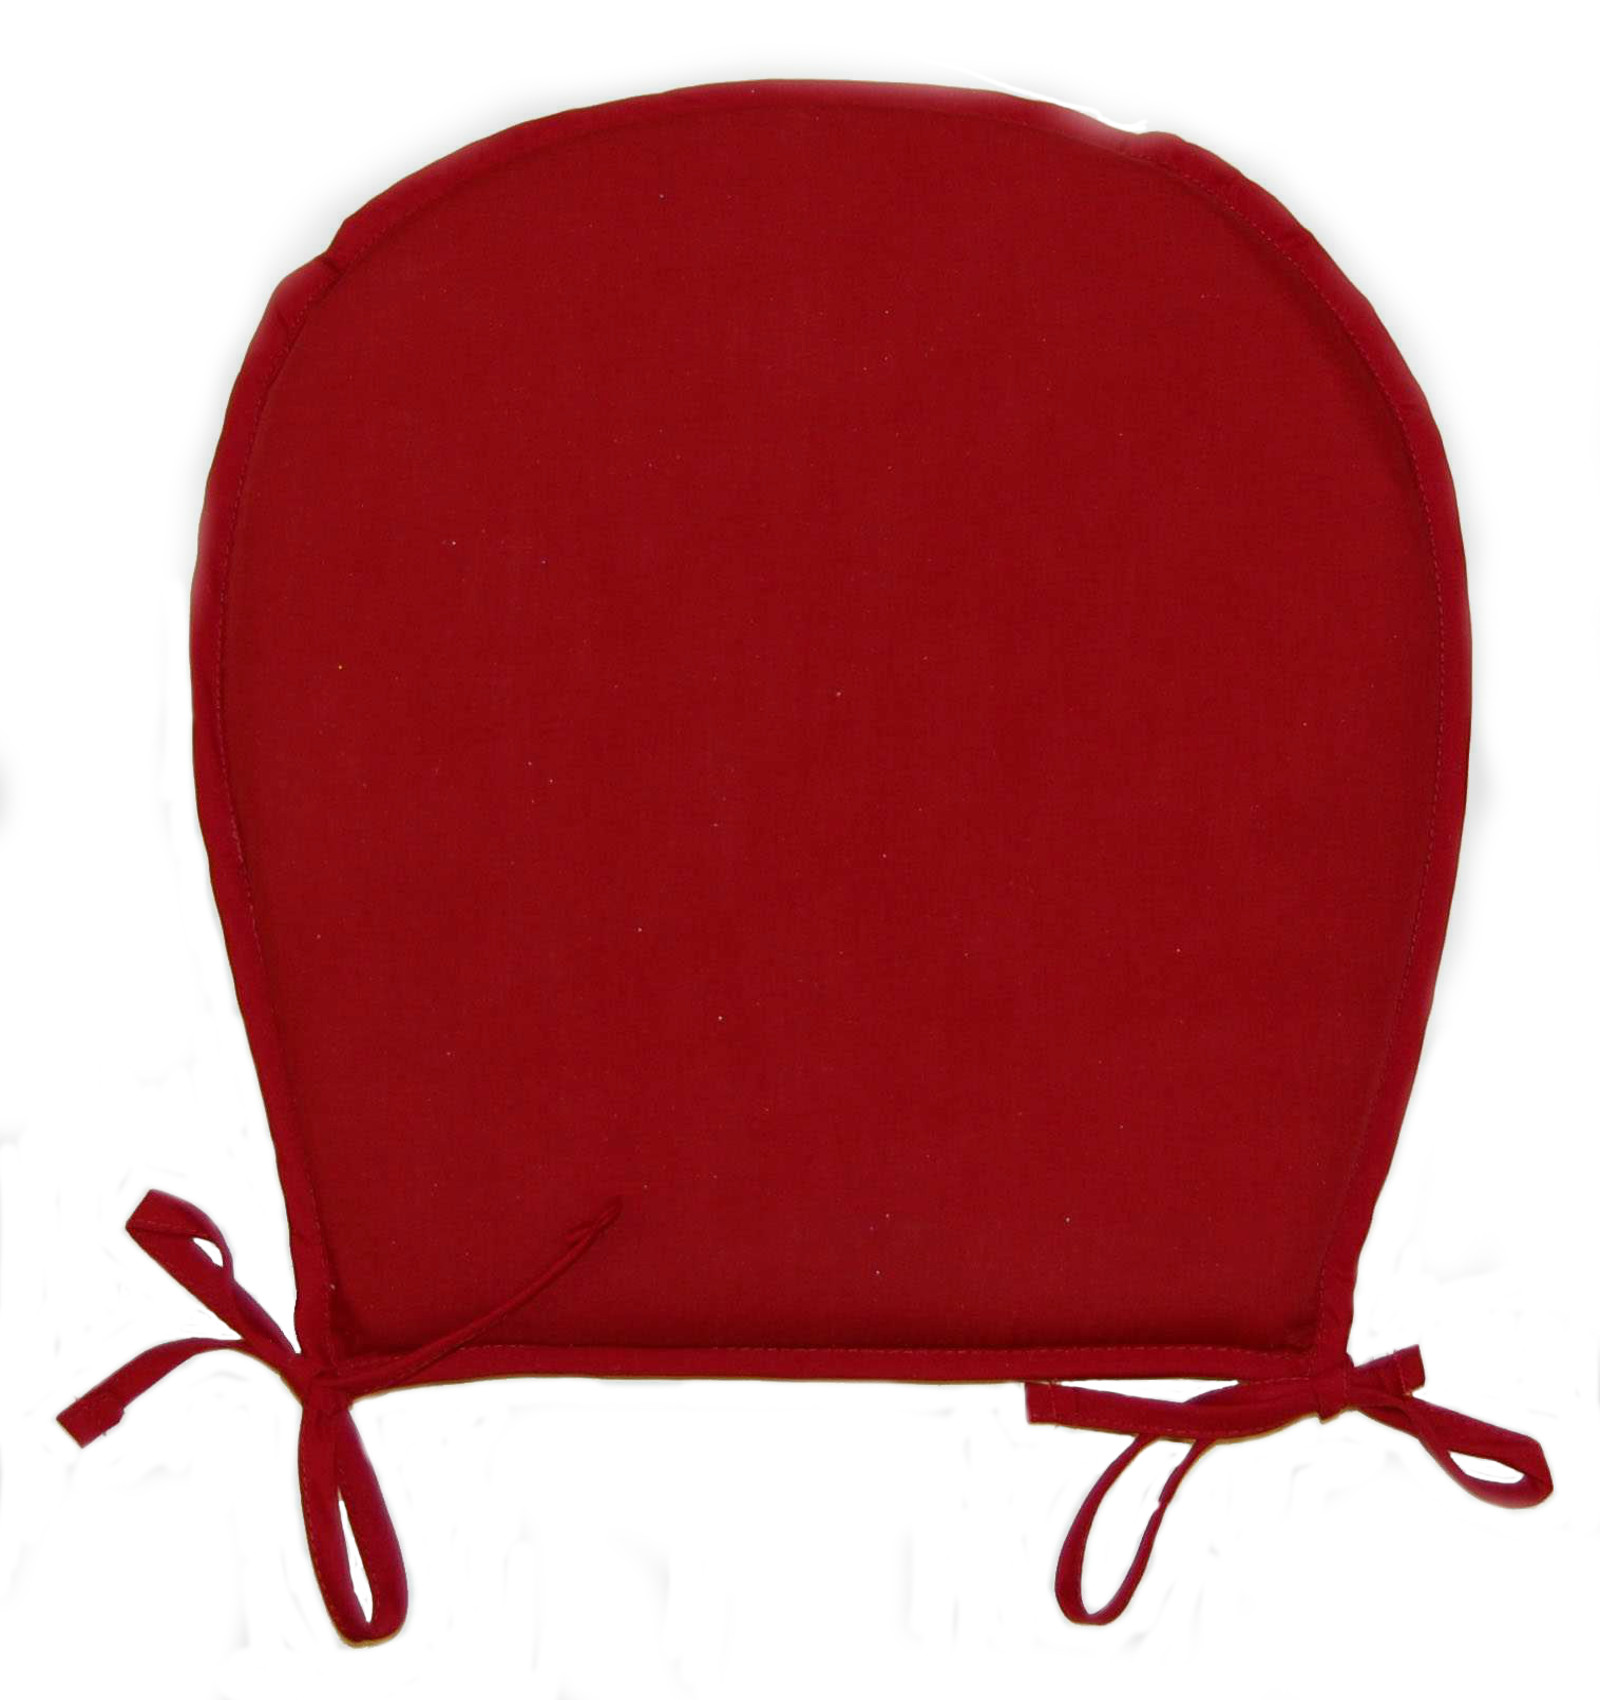 Chair Seat Pads Plain Round Kitchen Garden Furniture  : kitchen chair seat pad burgundy red wine from www.ebay.co.uk size 1600 x 1700 jpeg 239kB